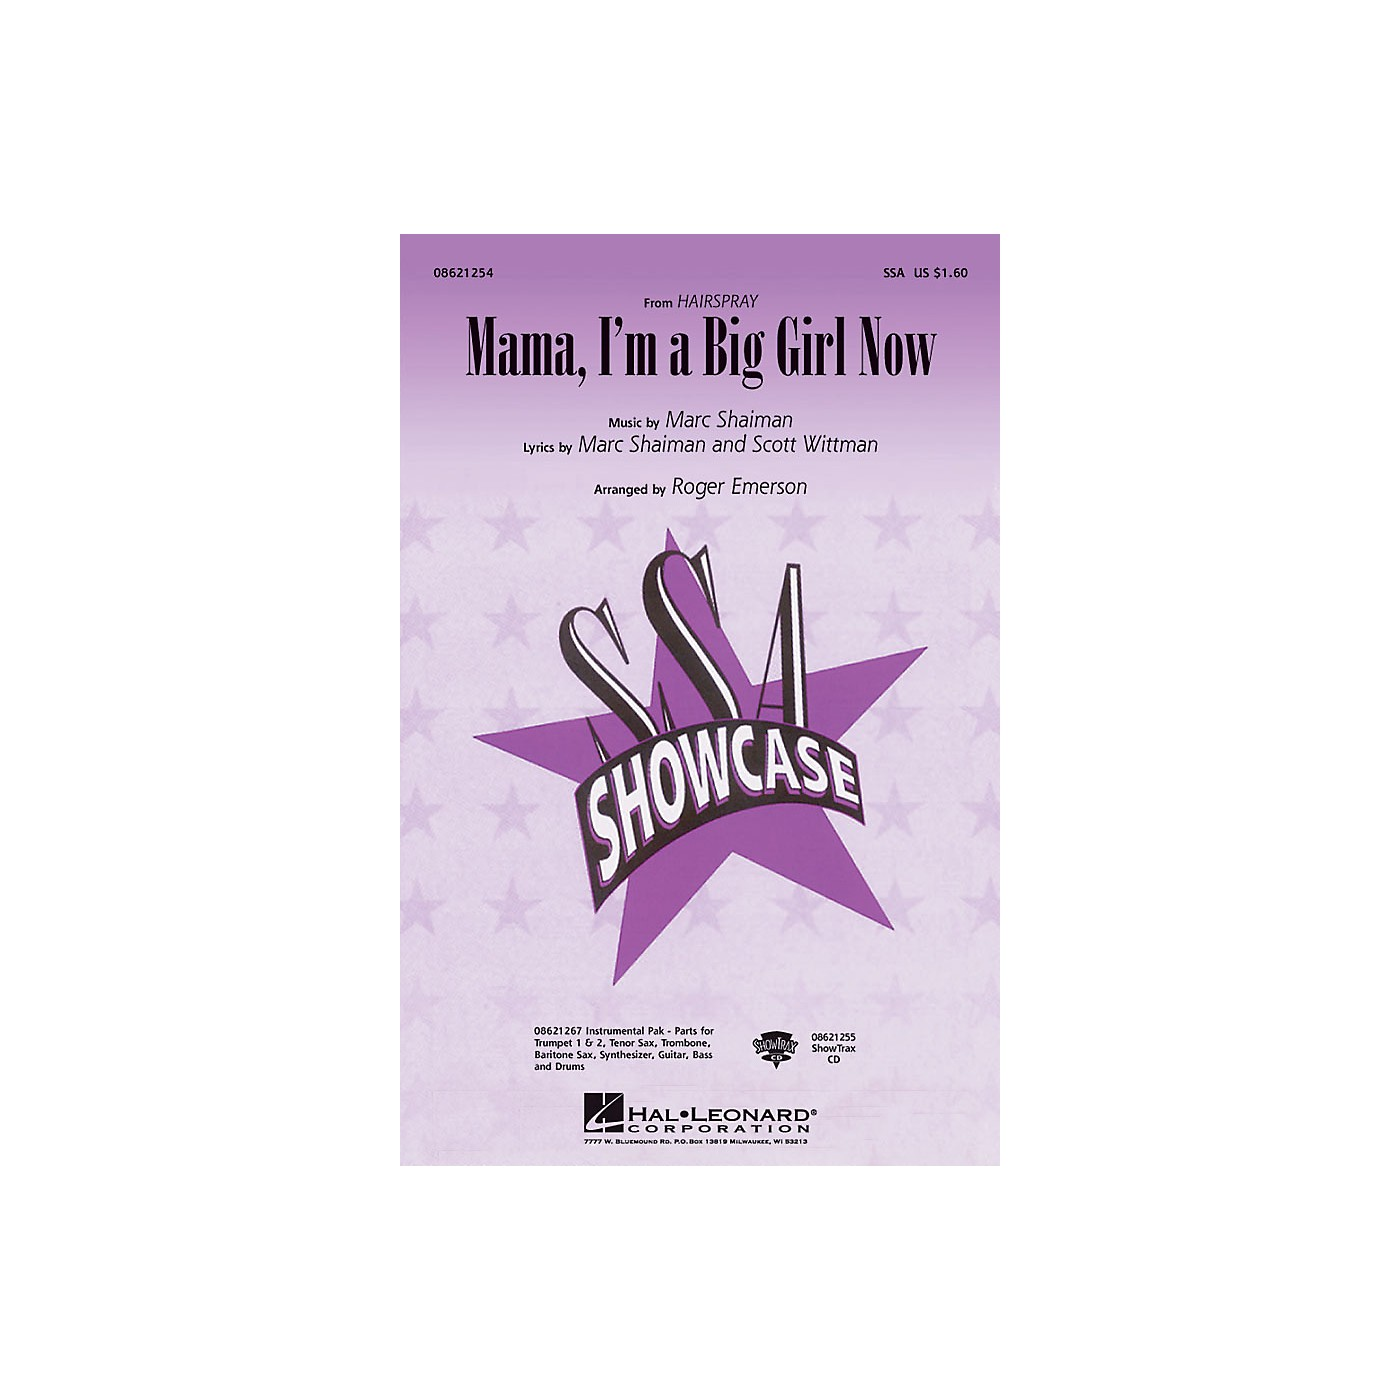 Hal Leonard Mama, I'm a Big Girl Now (from Hairspray) SSA arranged by Roger Emerson thumbnail